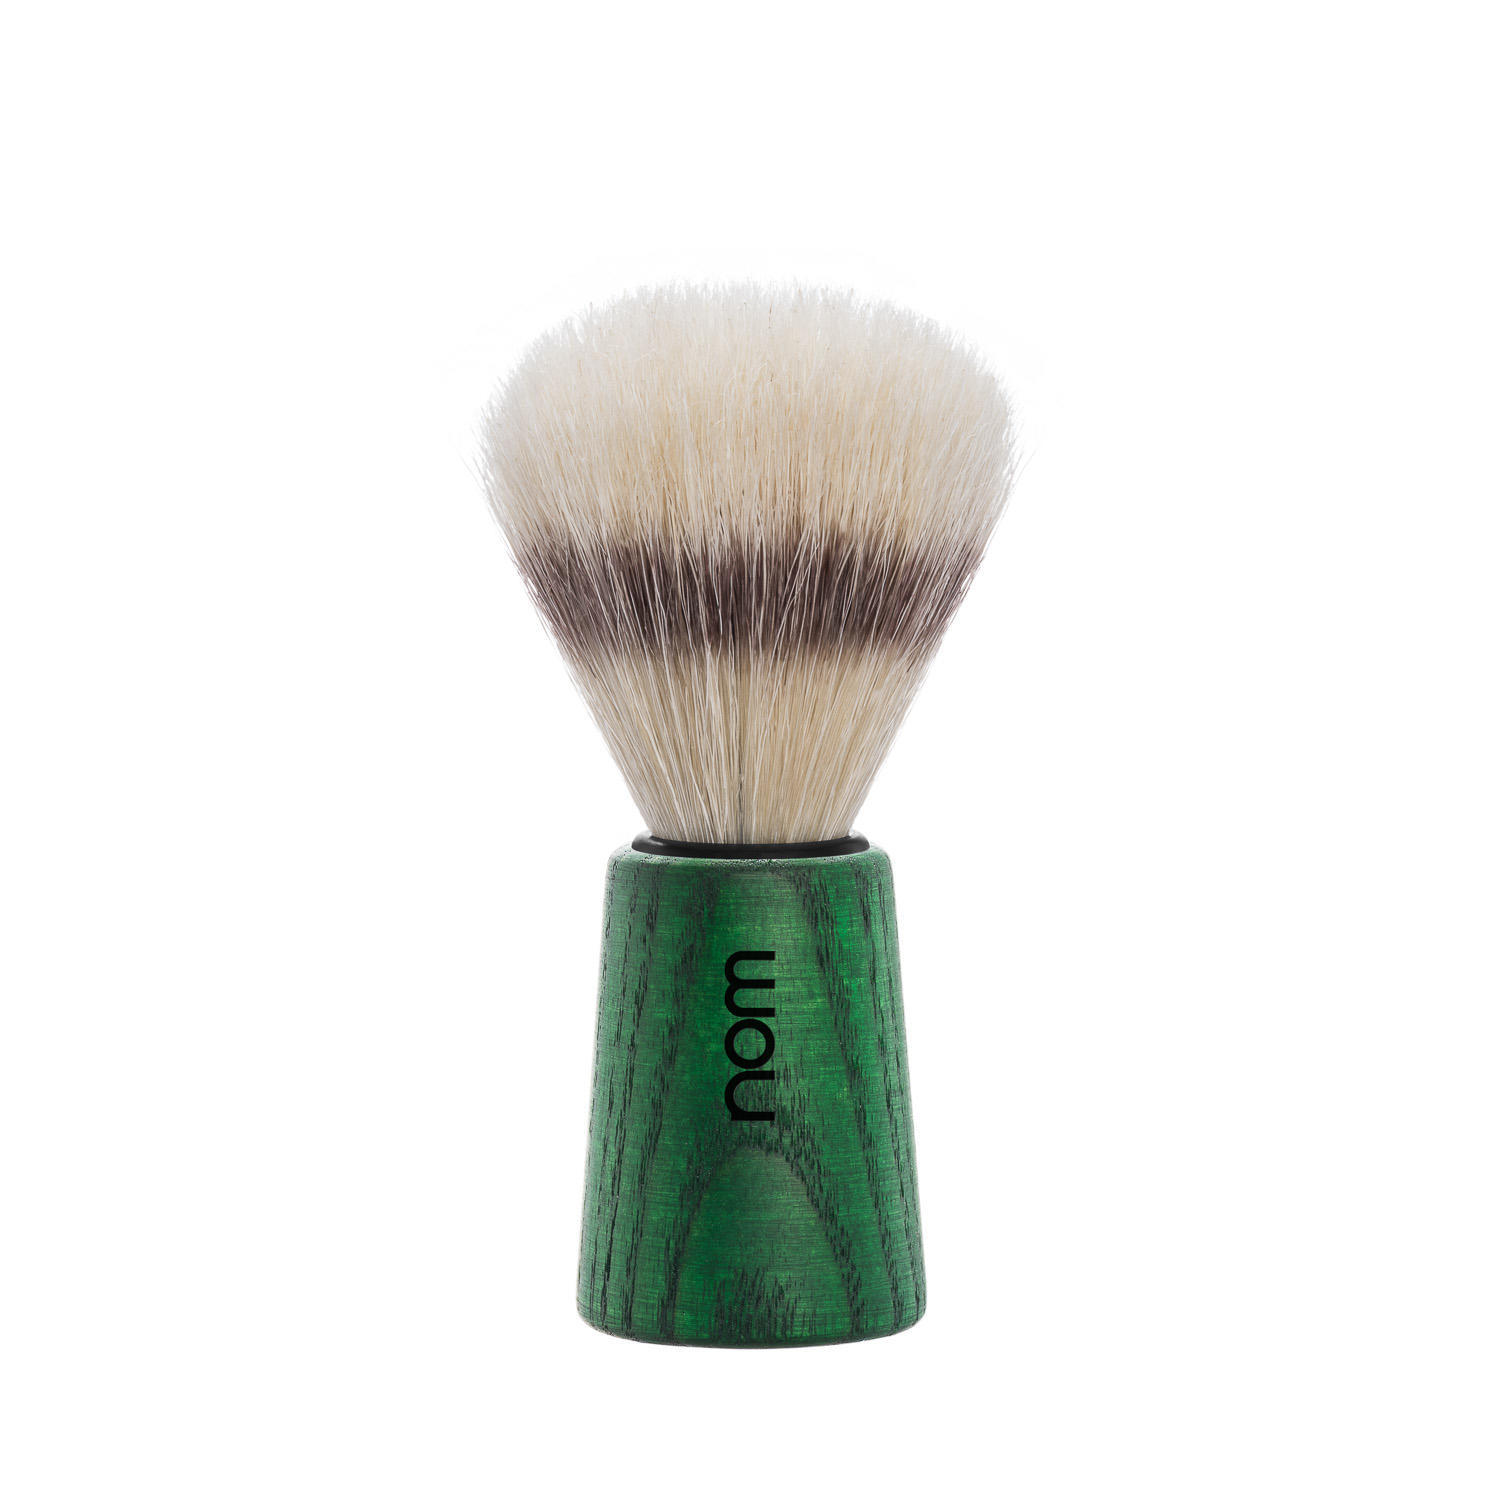 THEO41GA nom THEO, green ash, pure bristle shaving brush